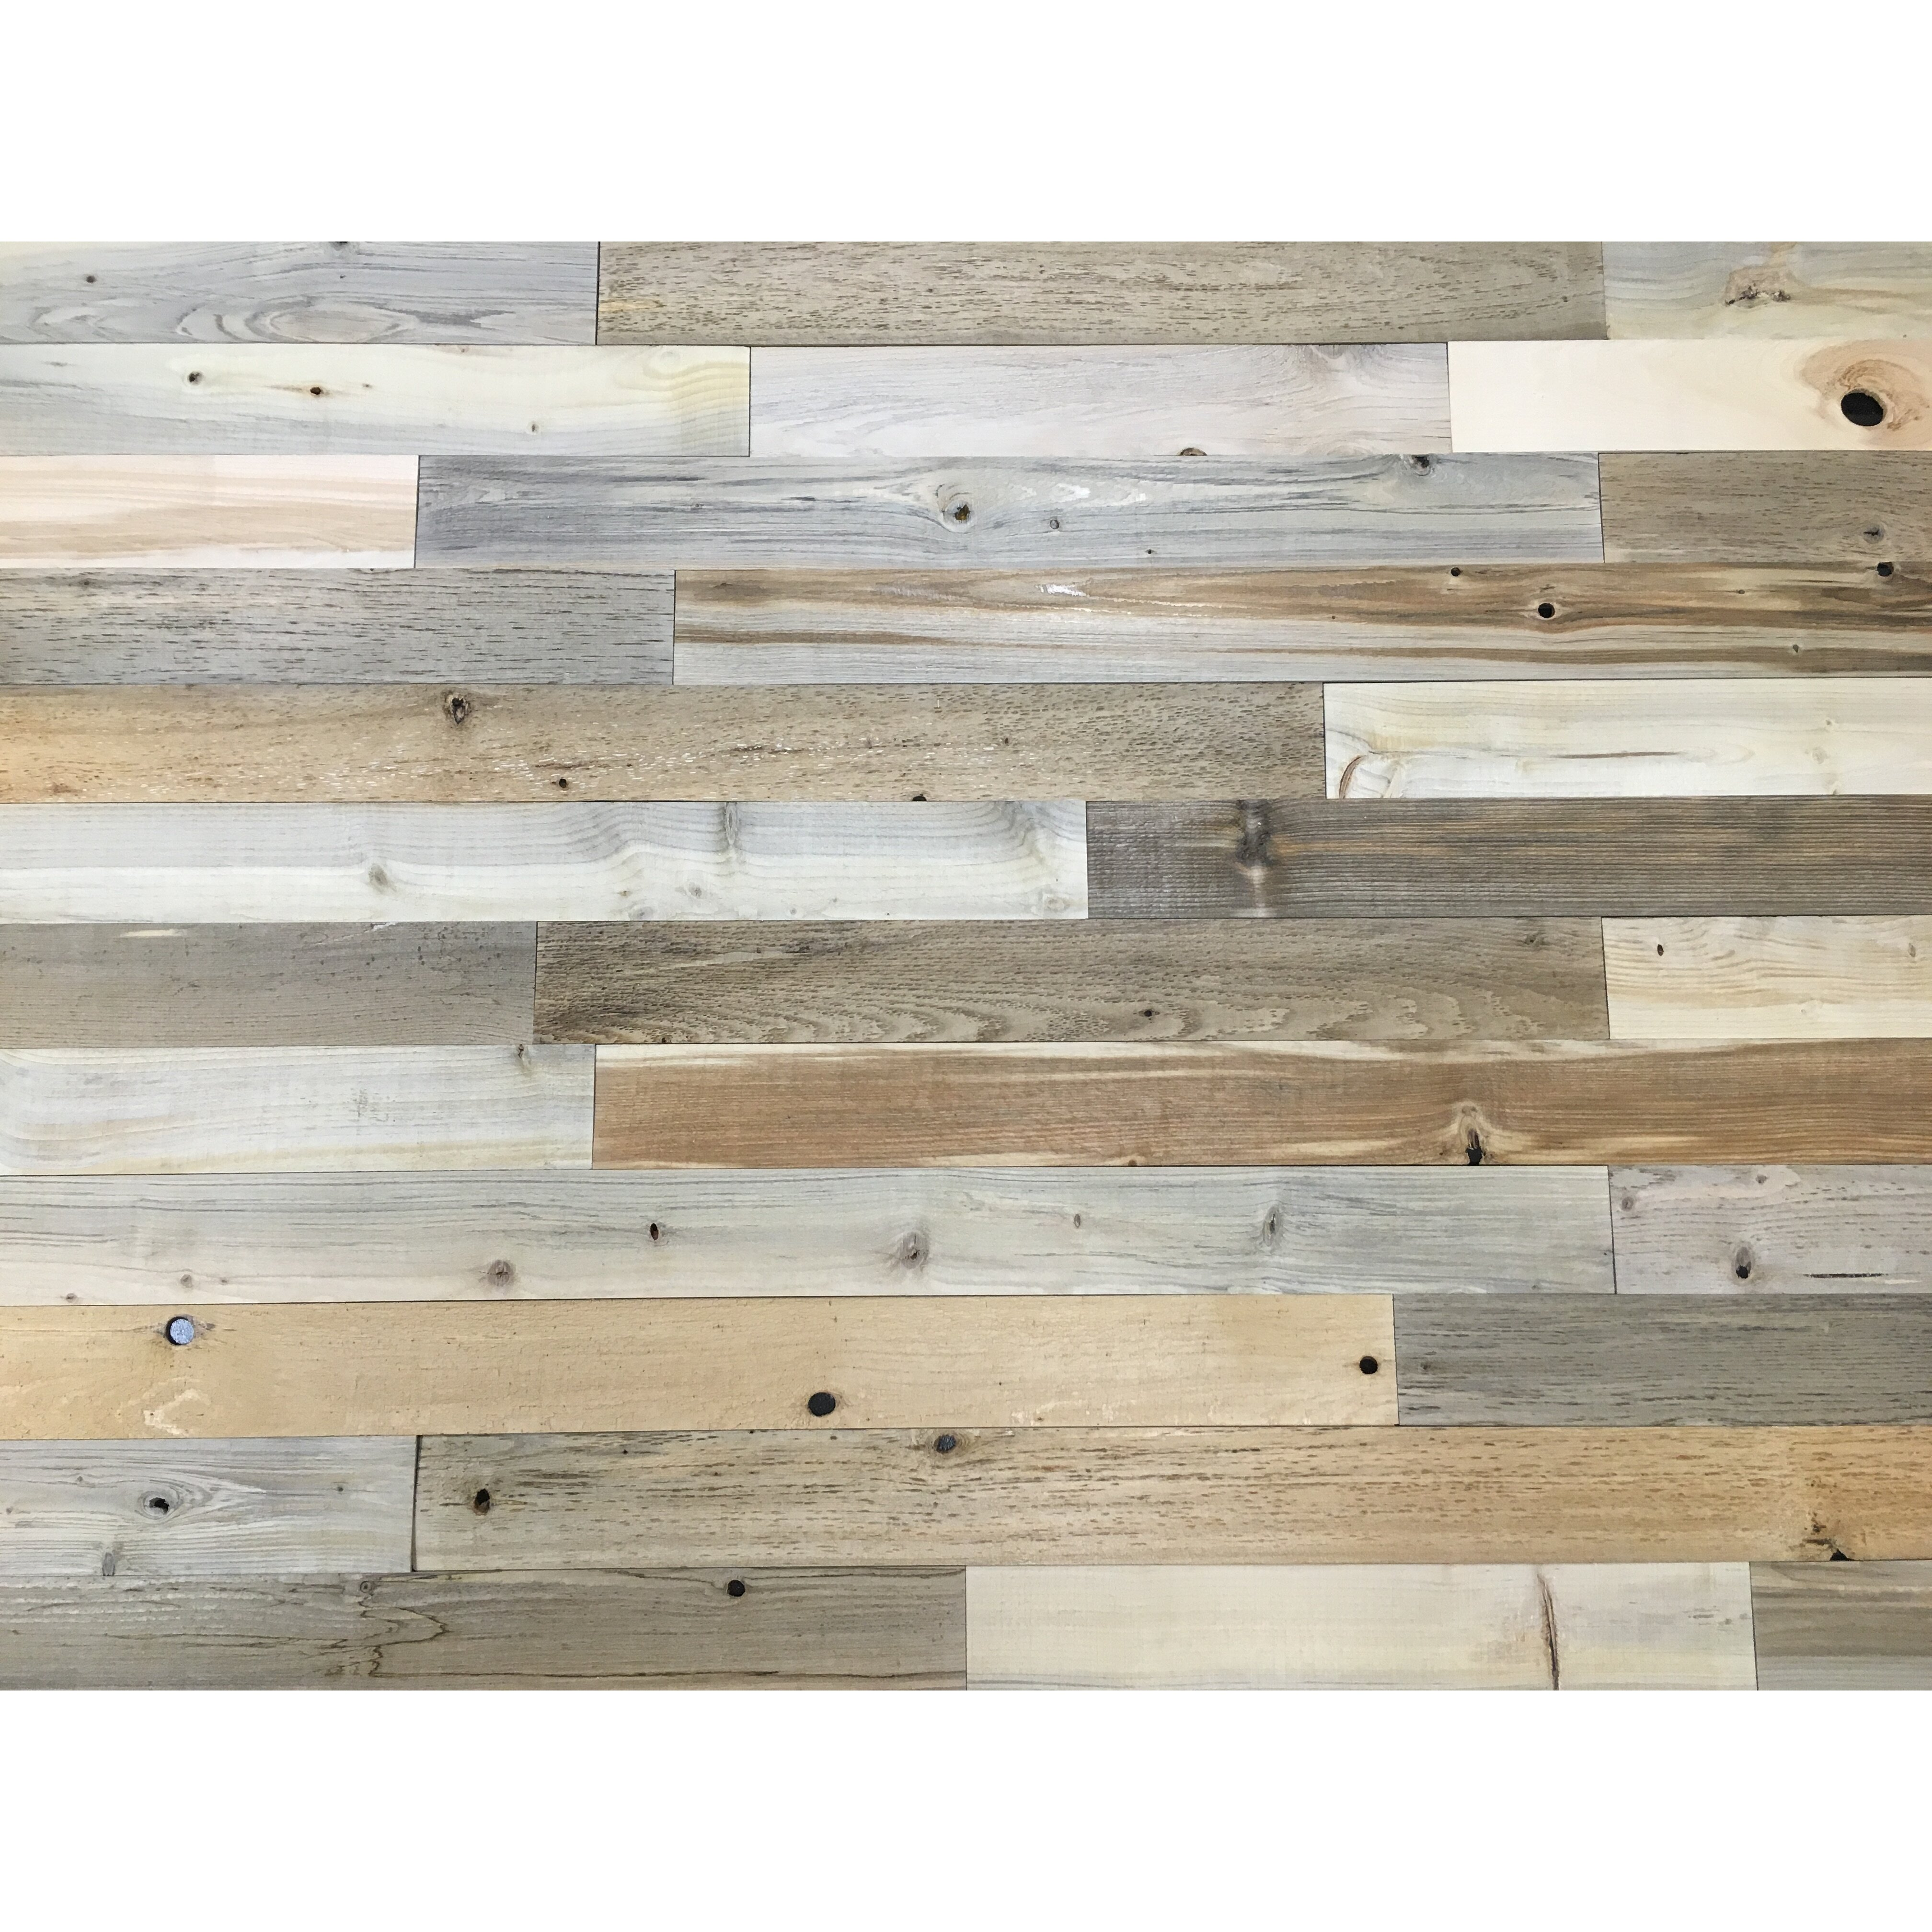 Wonderful image of TimberChic 3 Reclaimed Wood Wall Paneling in Natural & Reviews  with #7D6C4E color and 4032x4032 pixels